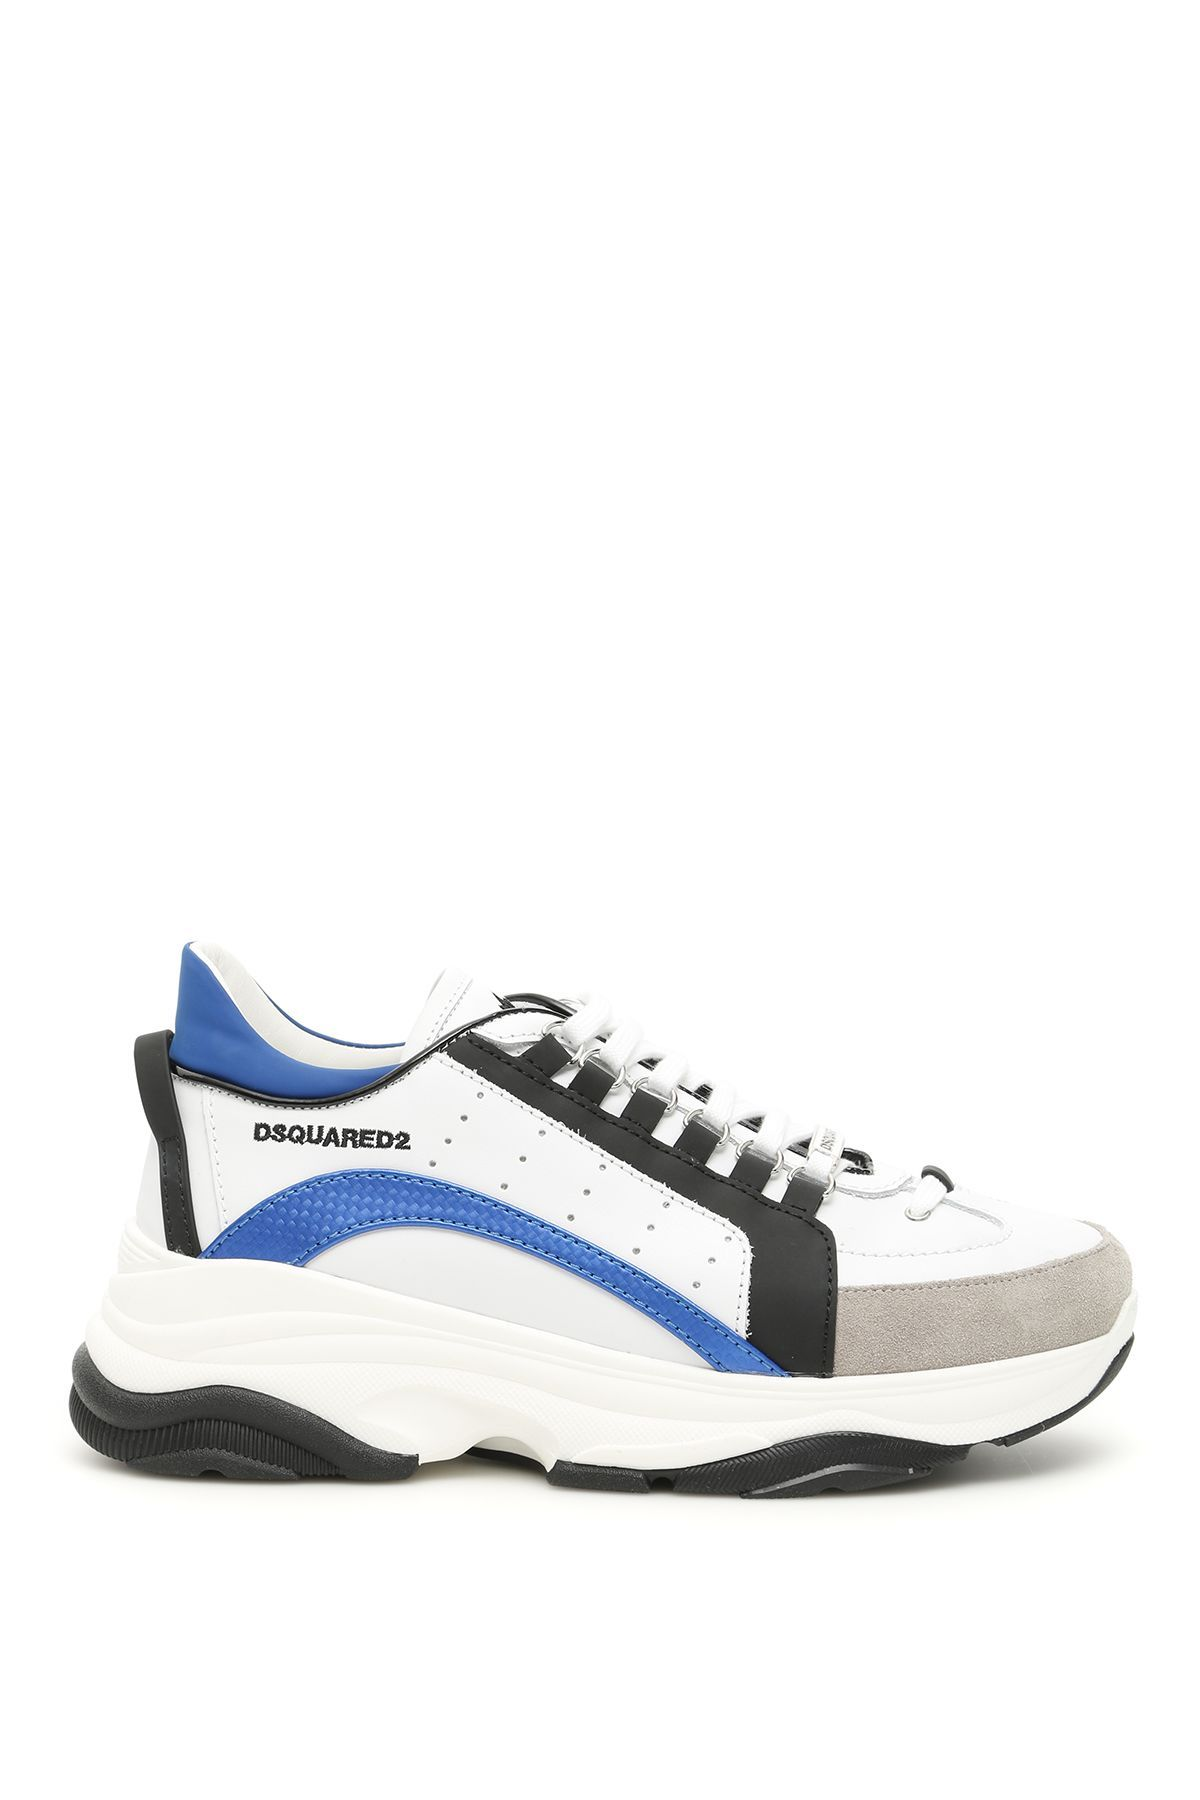 Dsquared2 Bumpy 551 Low-top Sneakers In